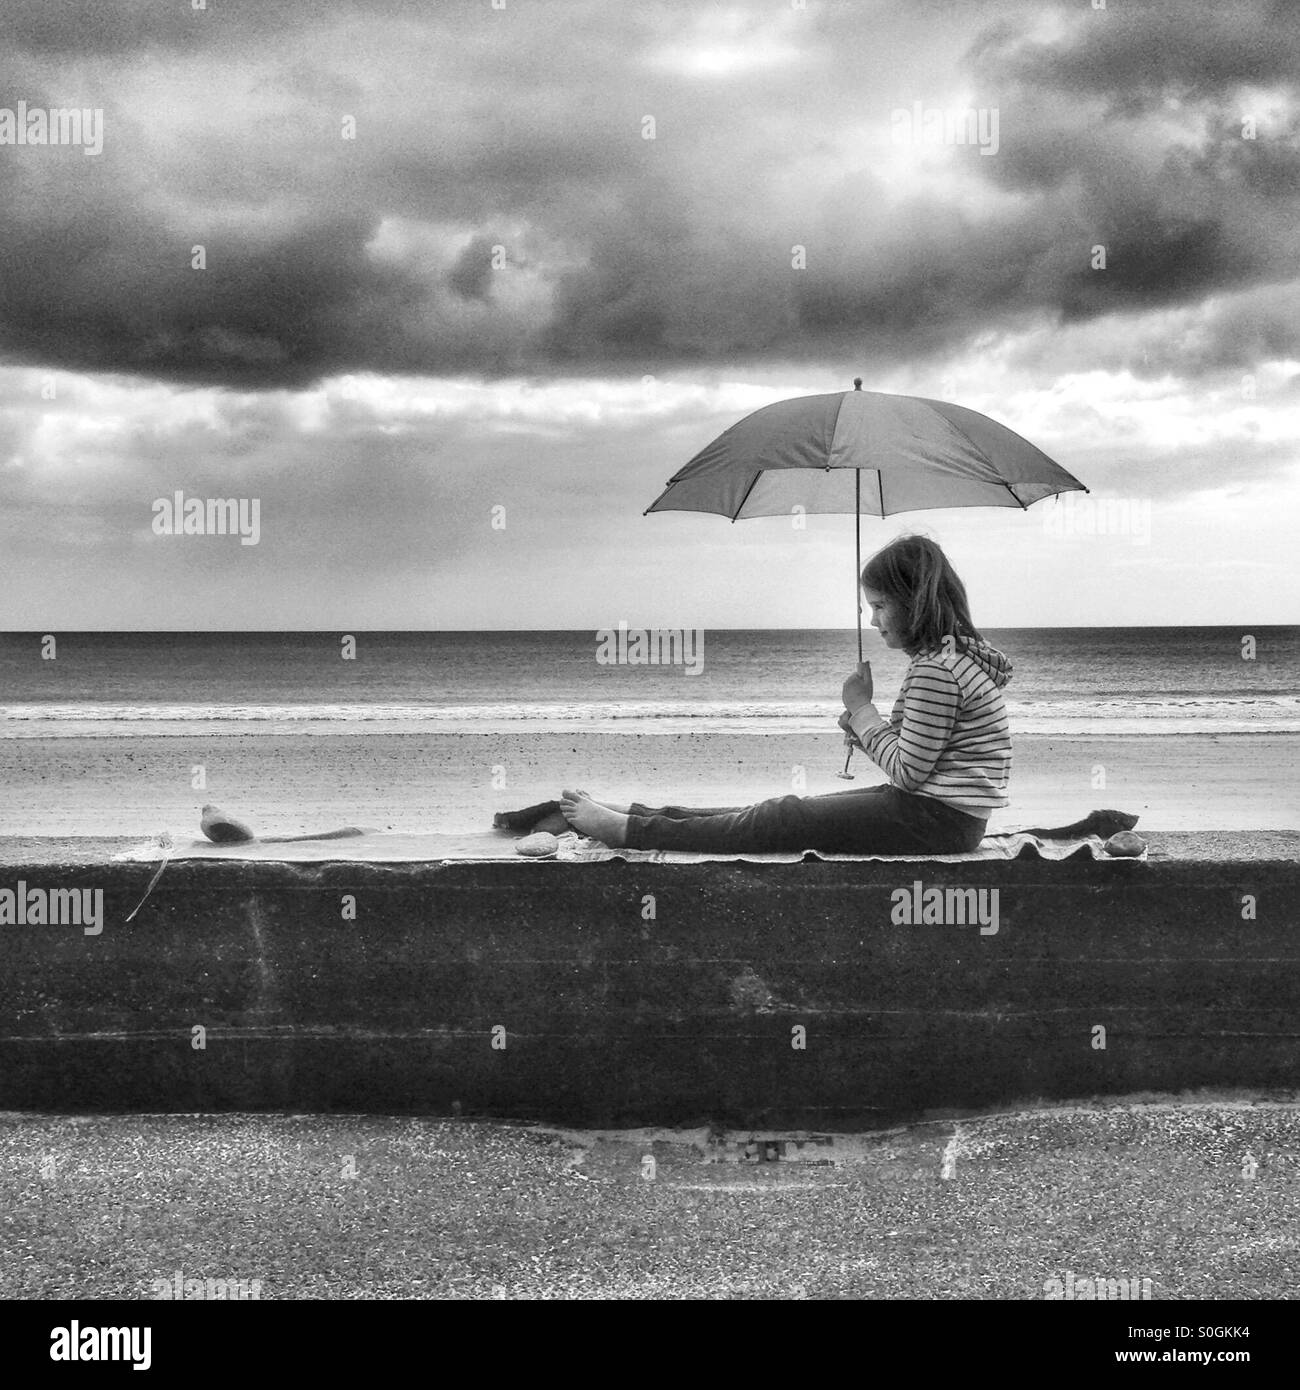 Girl sits on a beach wall with an umbrella - Stock Image